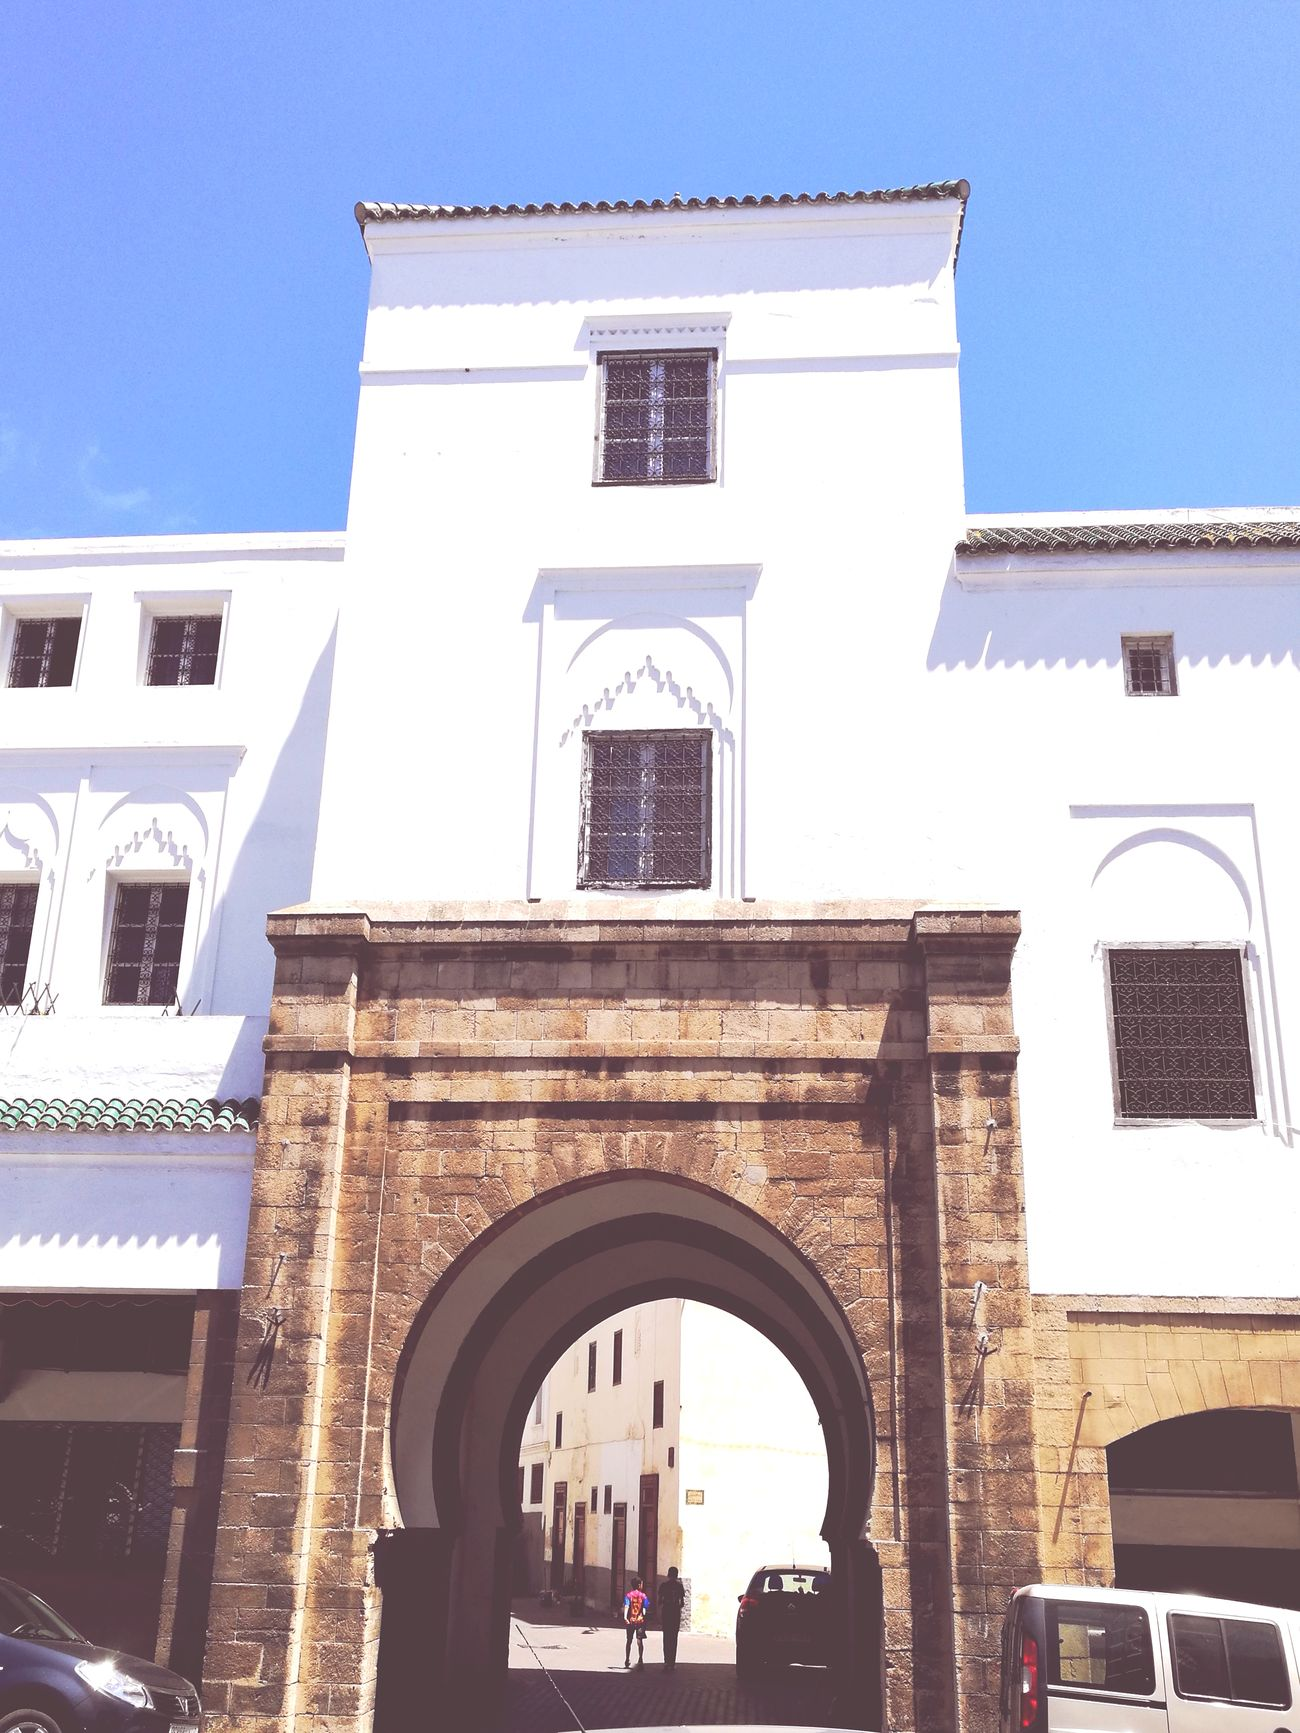 Arch Architecture Travel Destinations Built Structure Travel Low Angle View Outdoors Façade Building Exterior Day Sky City People Old City Casablanca Morocco